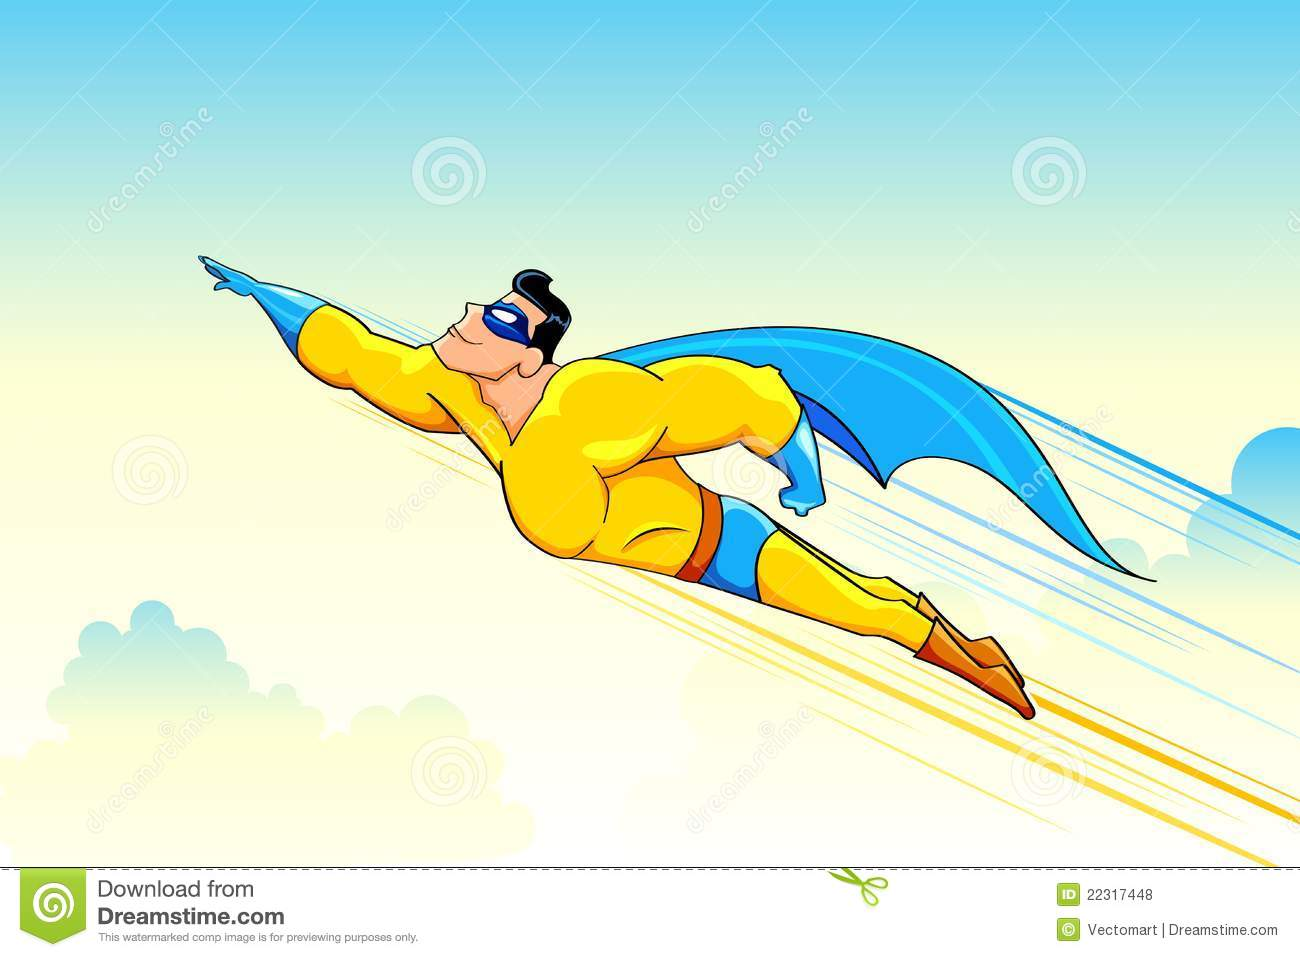 Flying Superhero Royalty Free Stock Photos  Image: 22317448